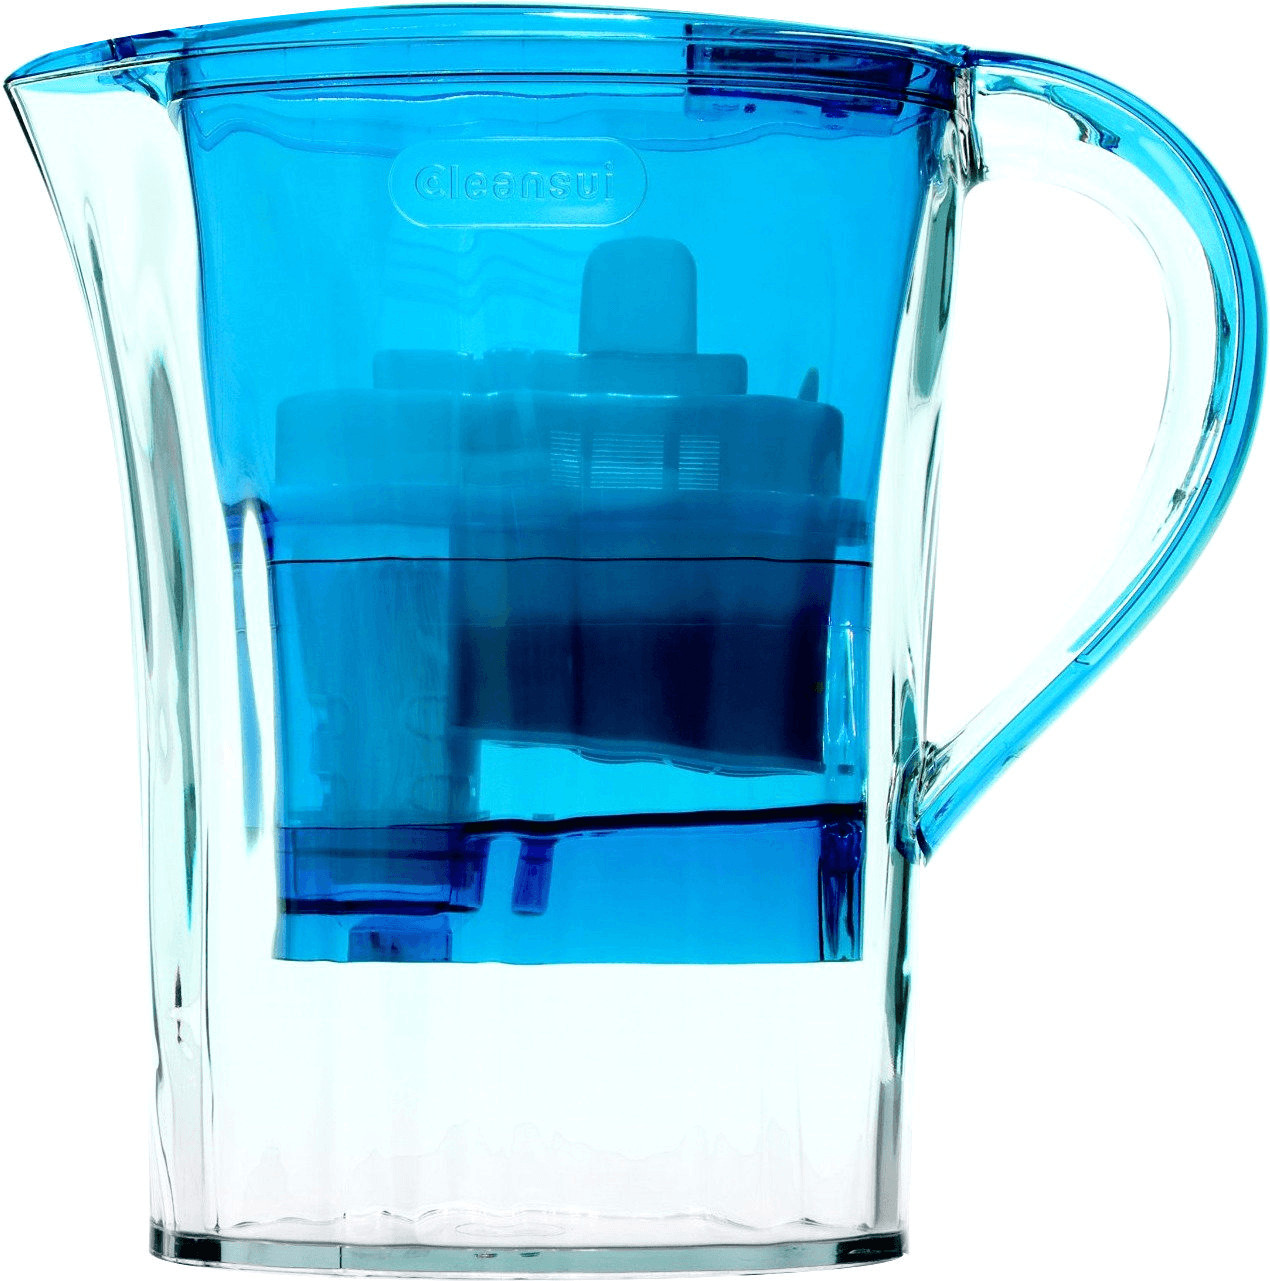 Cleansui GP001 Wasserfilter blue